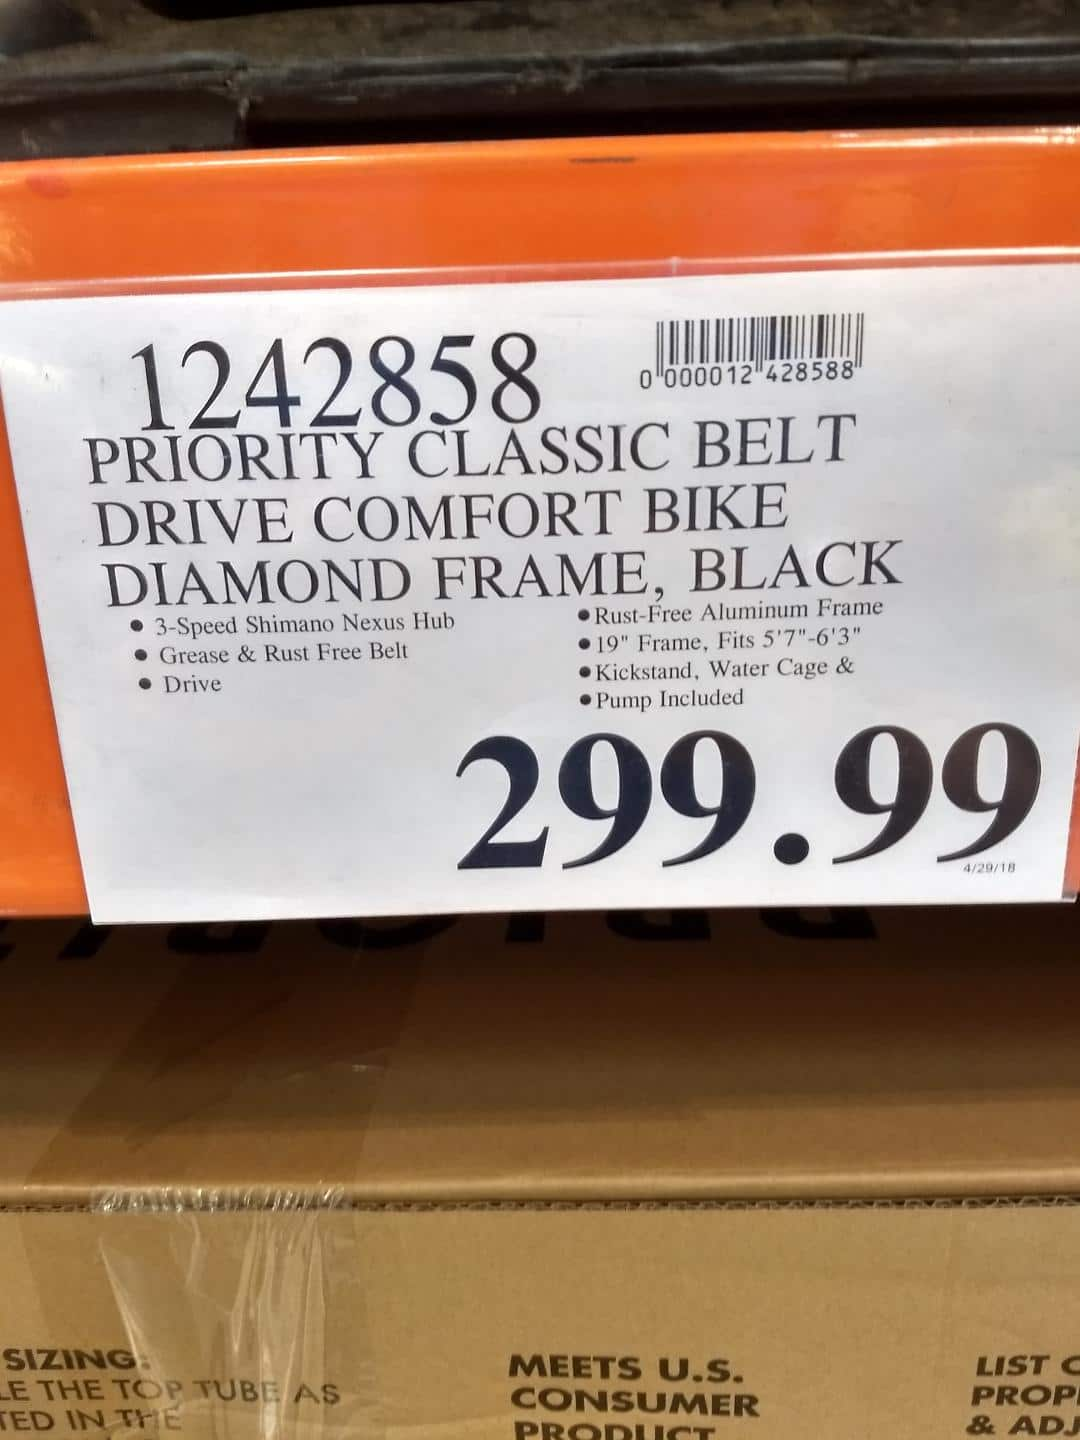 Priority Classic Belt Drive Bike $300 at Costco B&M